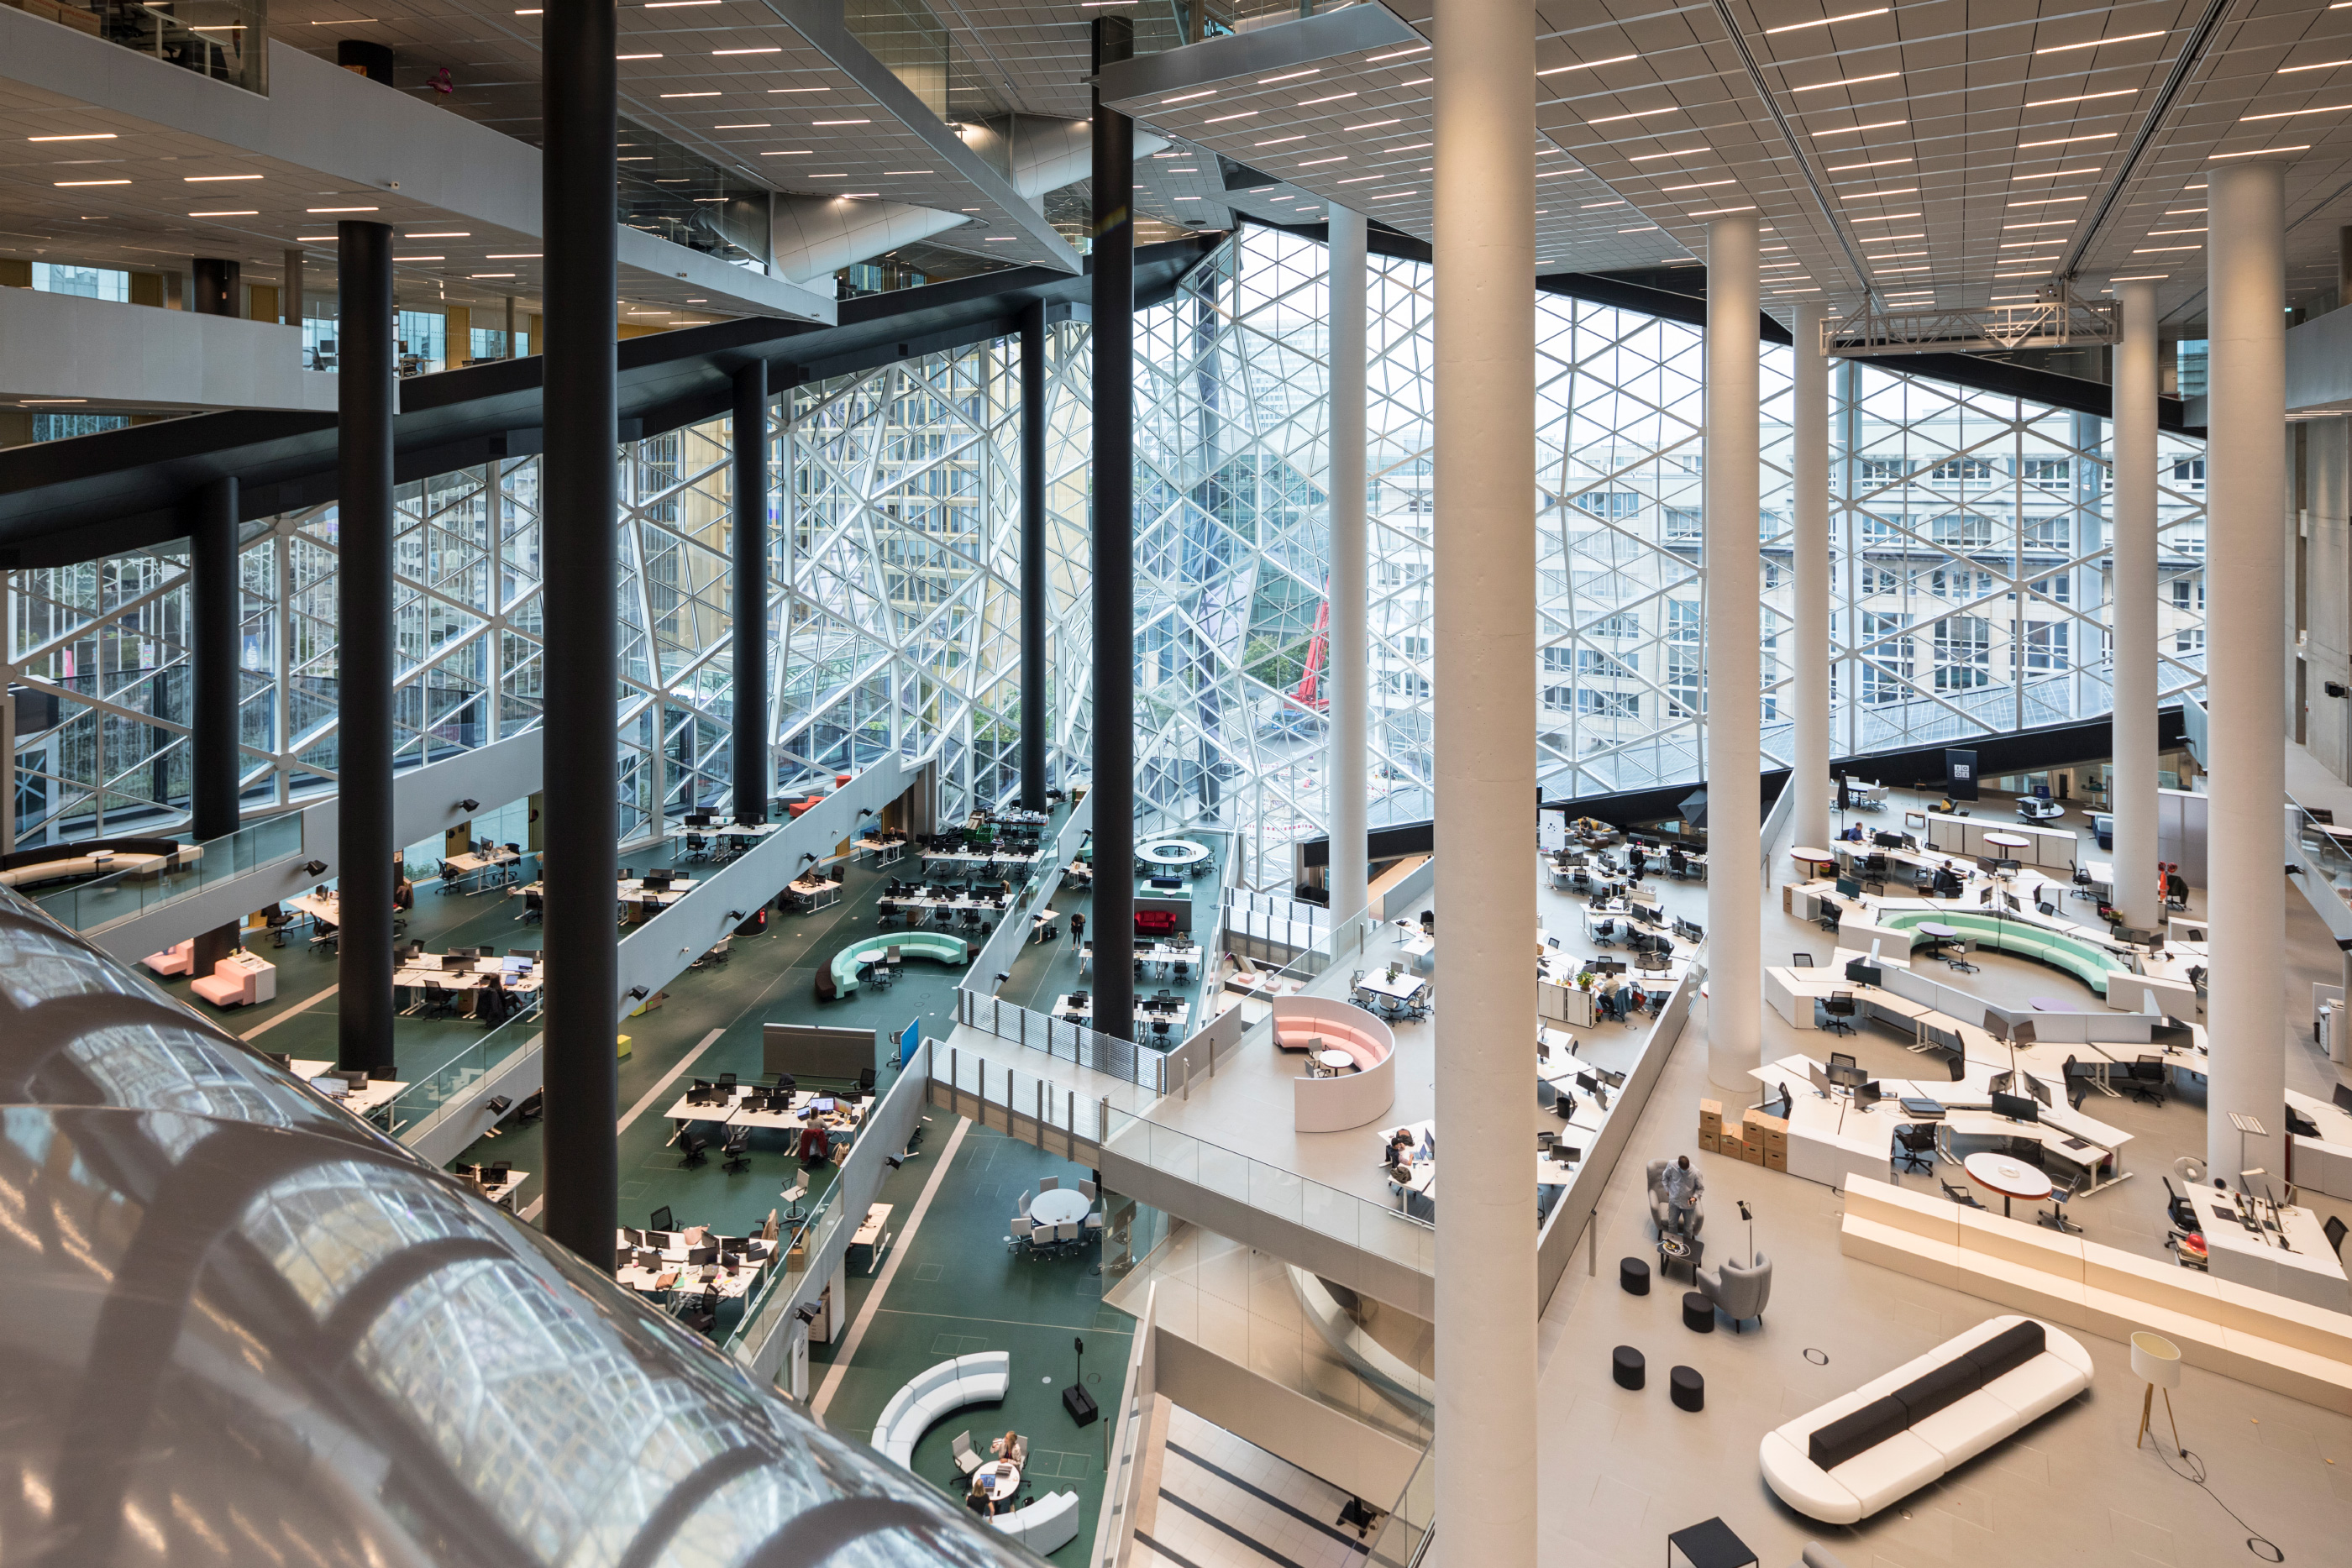 Interior of the new Axel Springer building looking out to a diamond shaped atrium